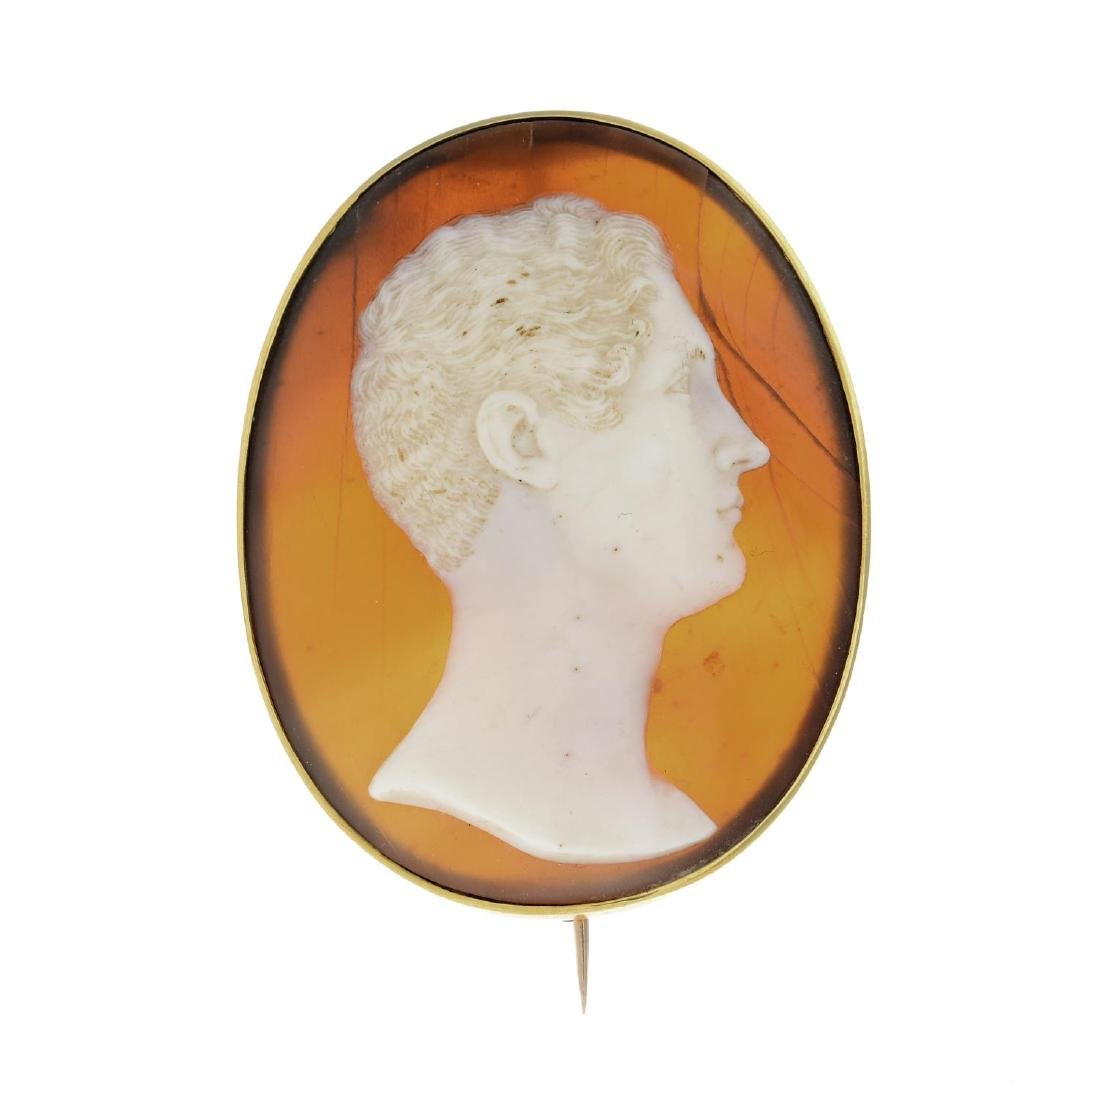 An early Victorian gold shell cameo brooch. The oval